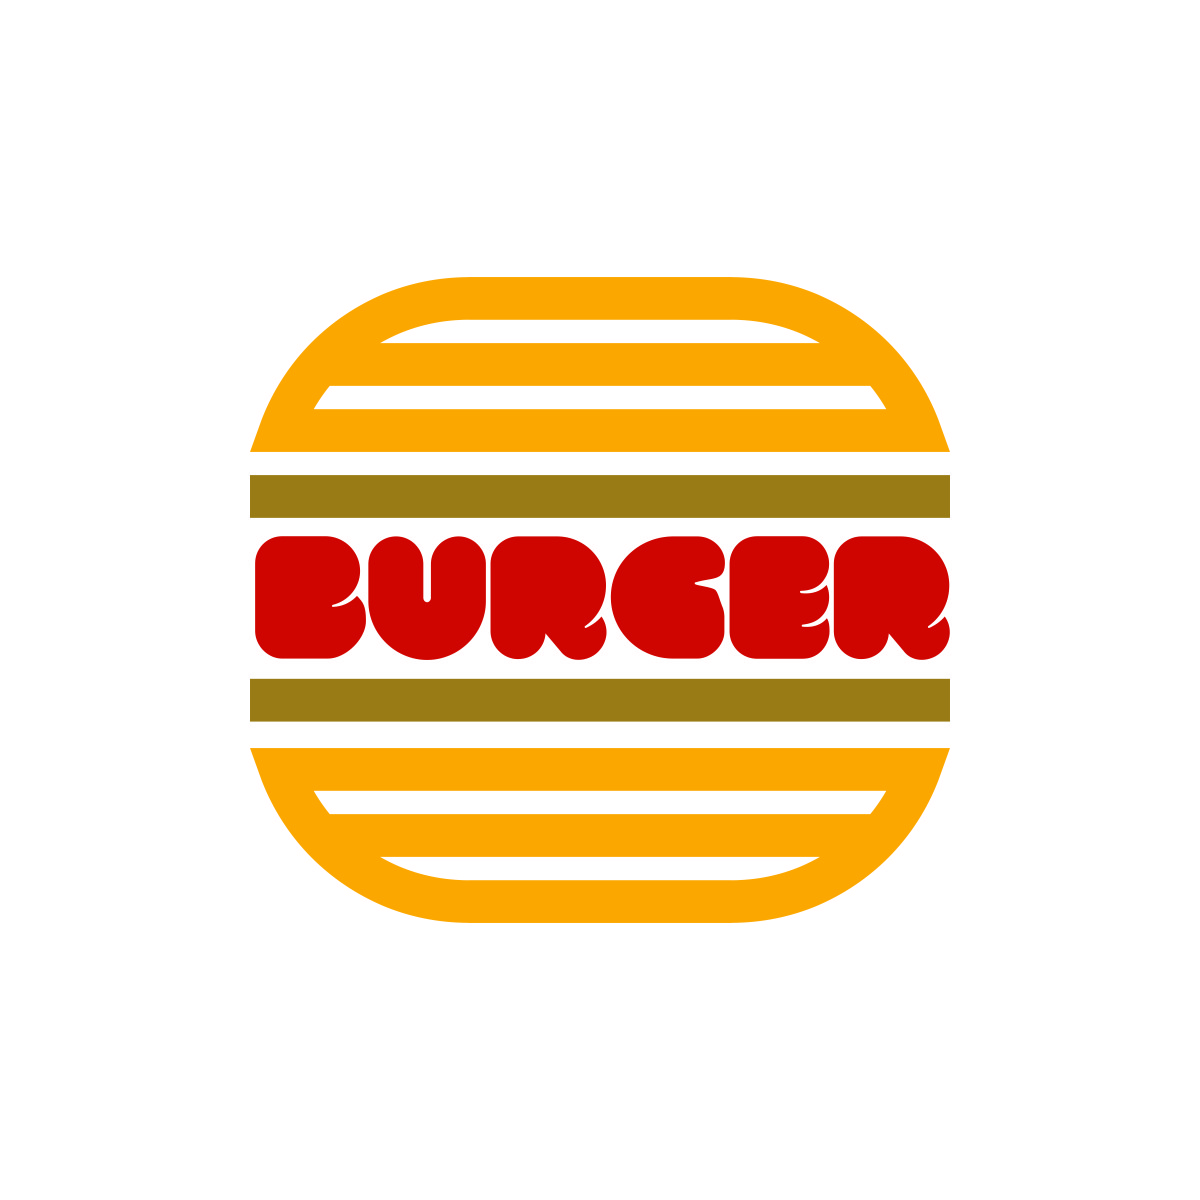 pop burger symbol logo